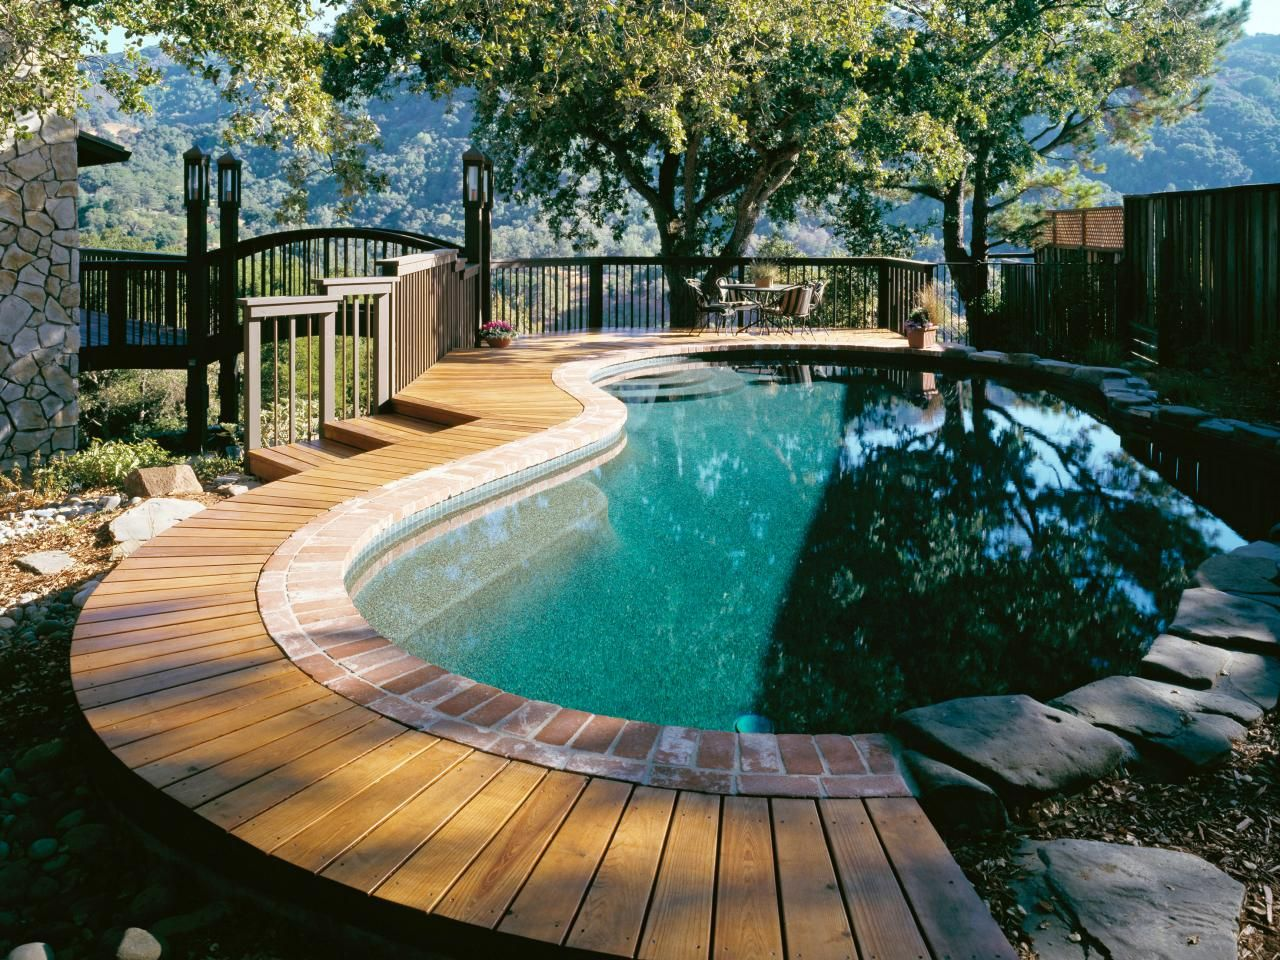 Above Ground Swimming Pool Decks Along With The Luxury And